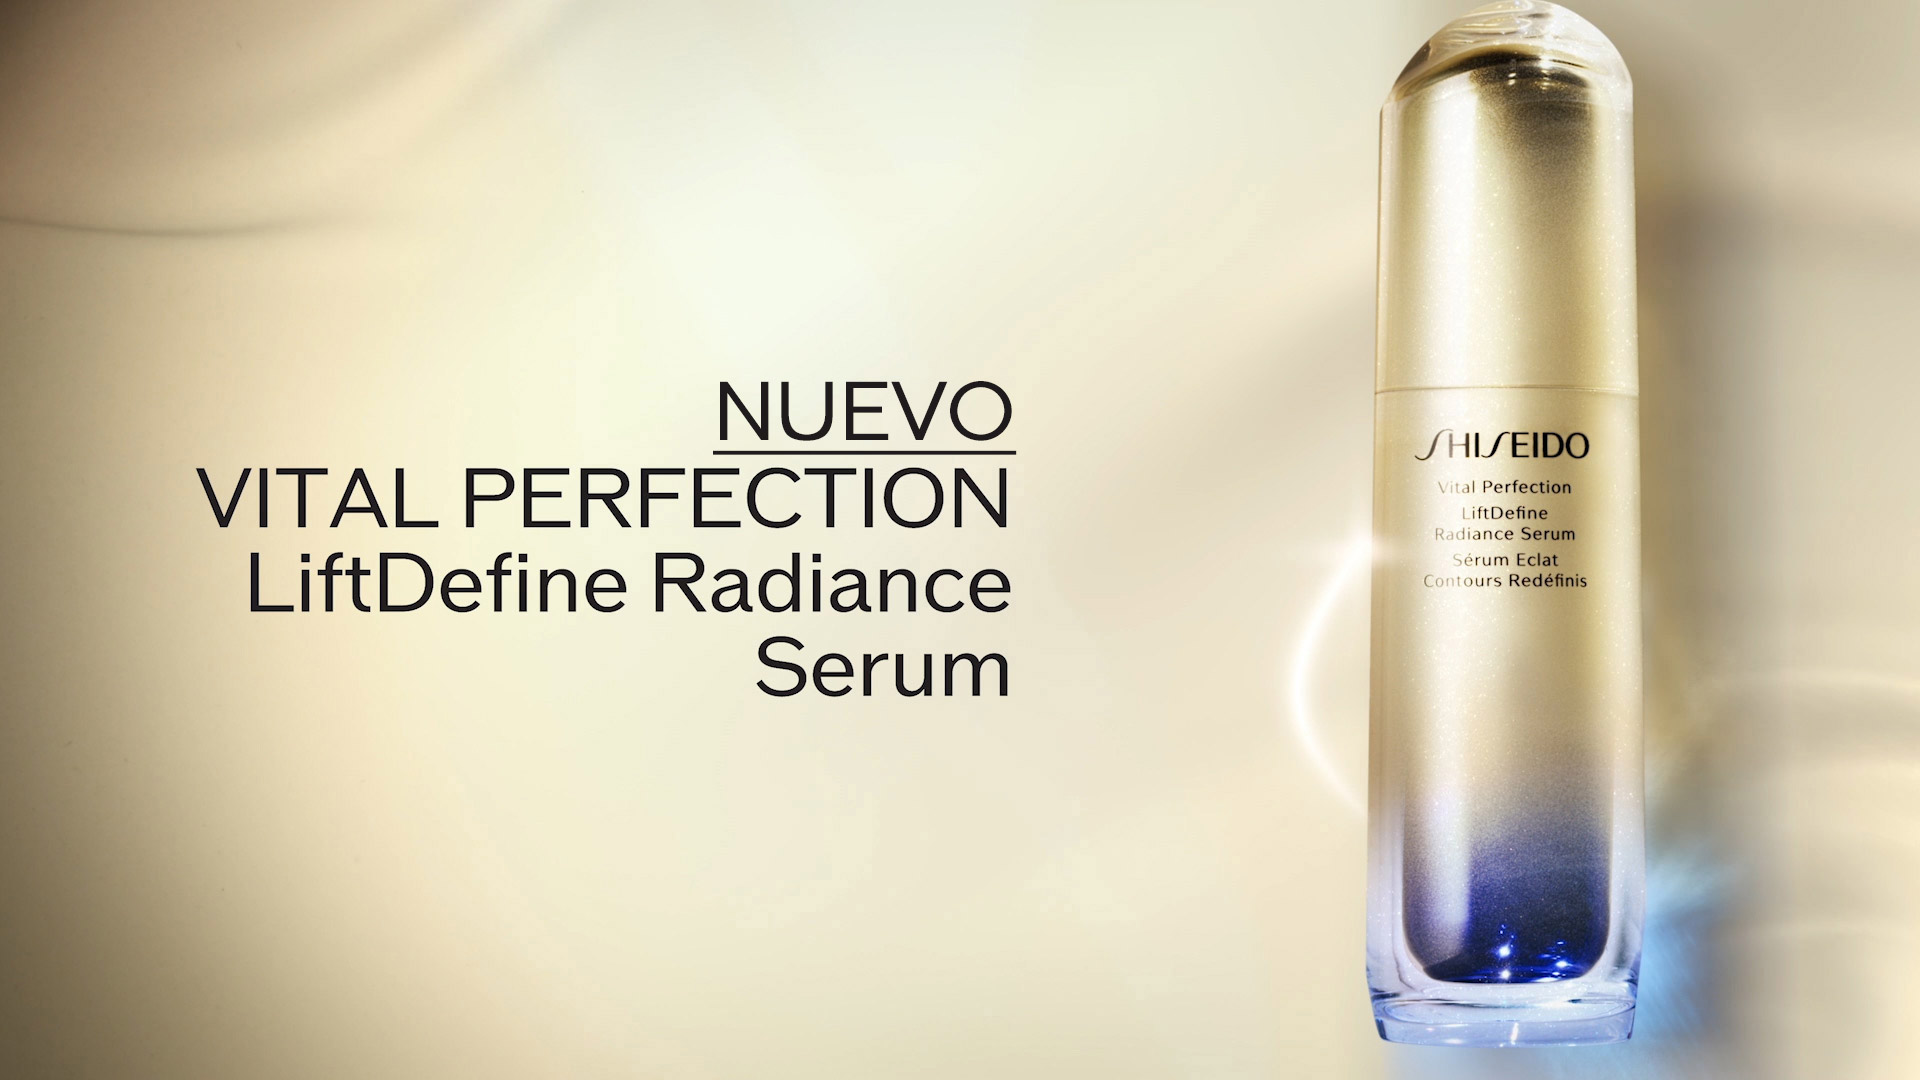 NUEVO Vital Perfection LifeDefine Radiance Serum